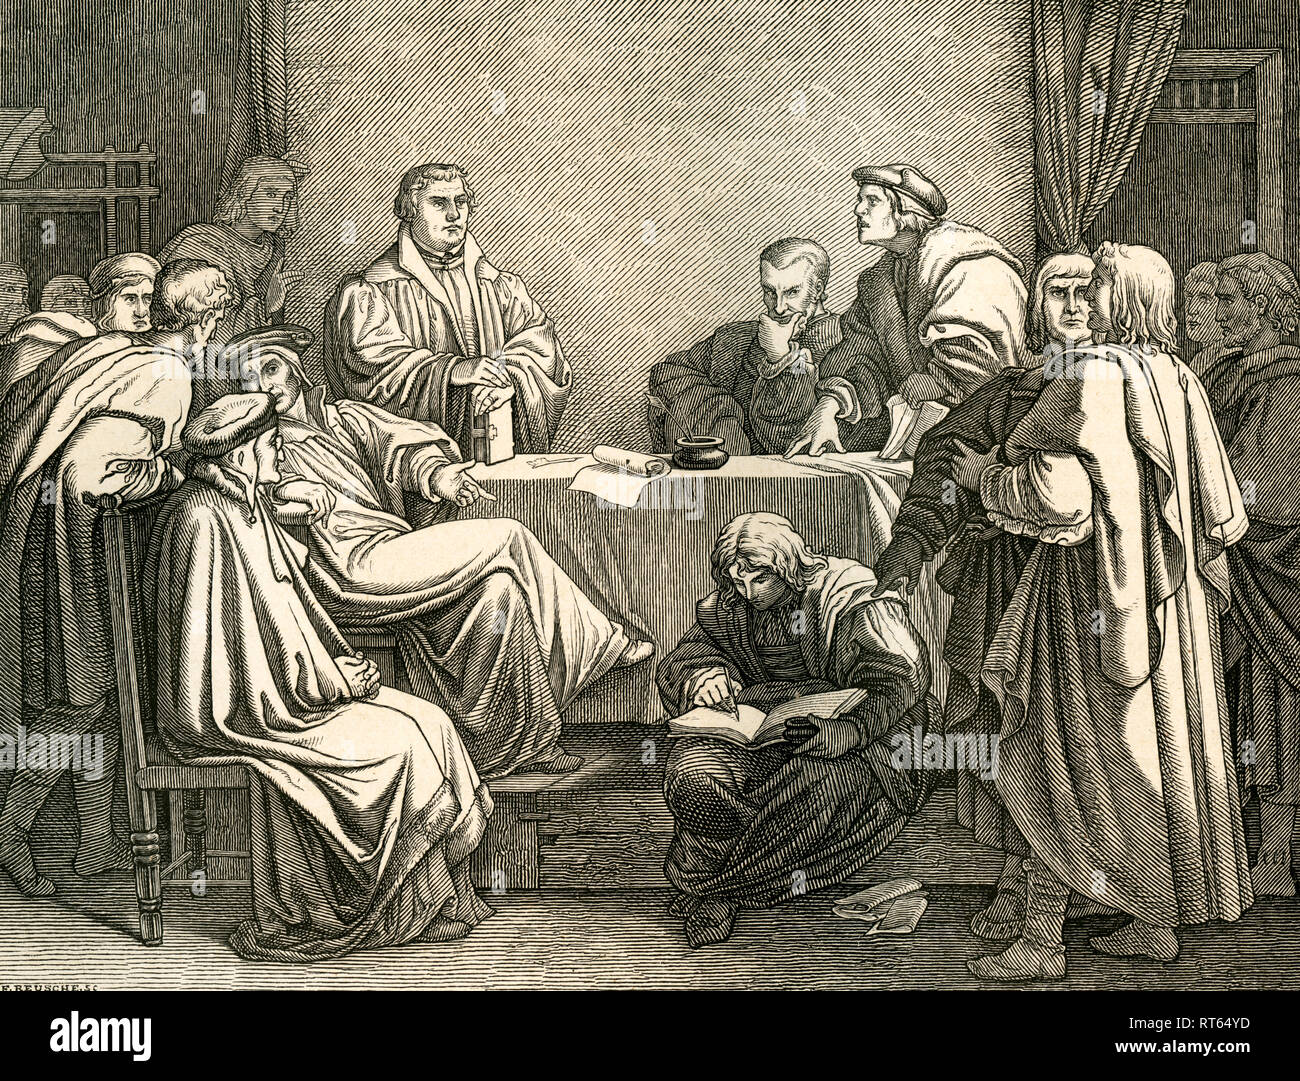 Luther und Eck in discussion, illustration (drawn by Trenkwald, engraved by F. Reusche) from: 'Die deutsche Geschichte in Bildern ' (images of German history), text by Dr. F. Bülau, published by C.C. Meinhold & sons, Dresden, 1862., Additional-Rights-Clearance-Info-Not-Available - Stock Image